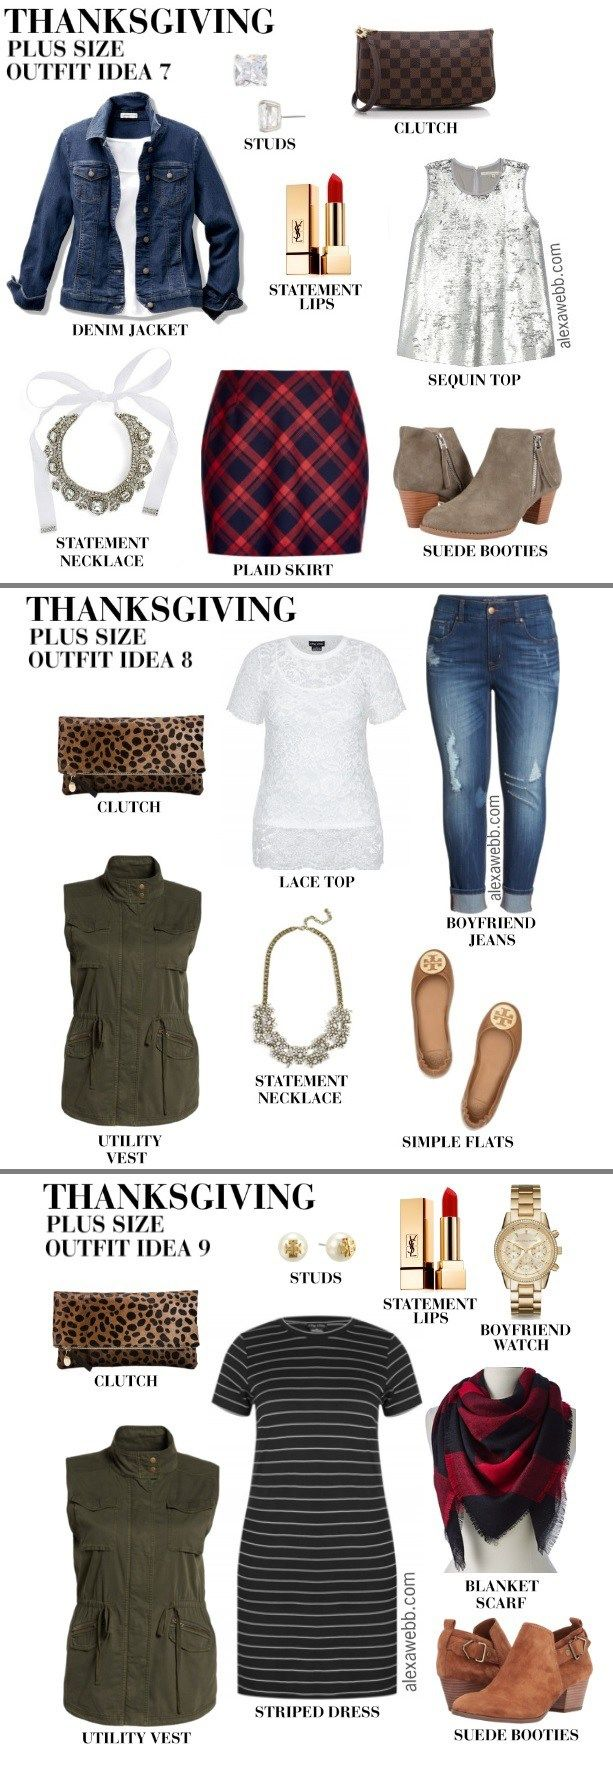 Plus Size Thanksgiving Outfits - Plus Size Holiday Outfit - Plus Size Fall Outfits - Plus Size Fashion for Women - alexawebb.com #alexawebb #plussize